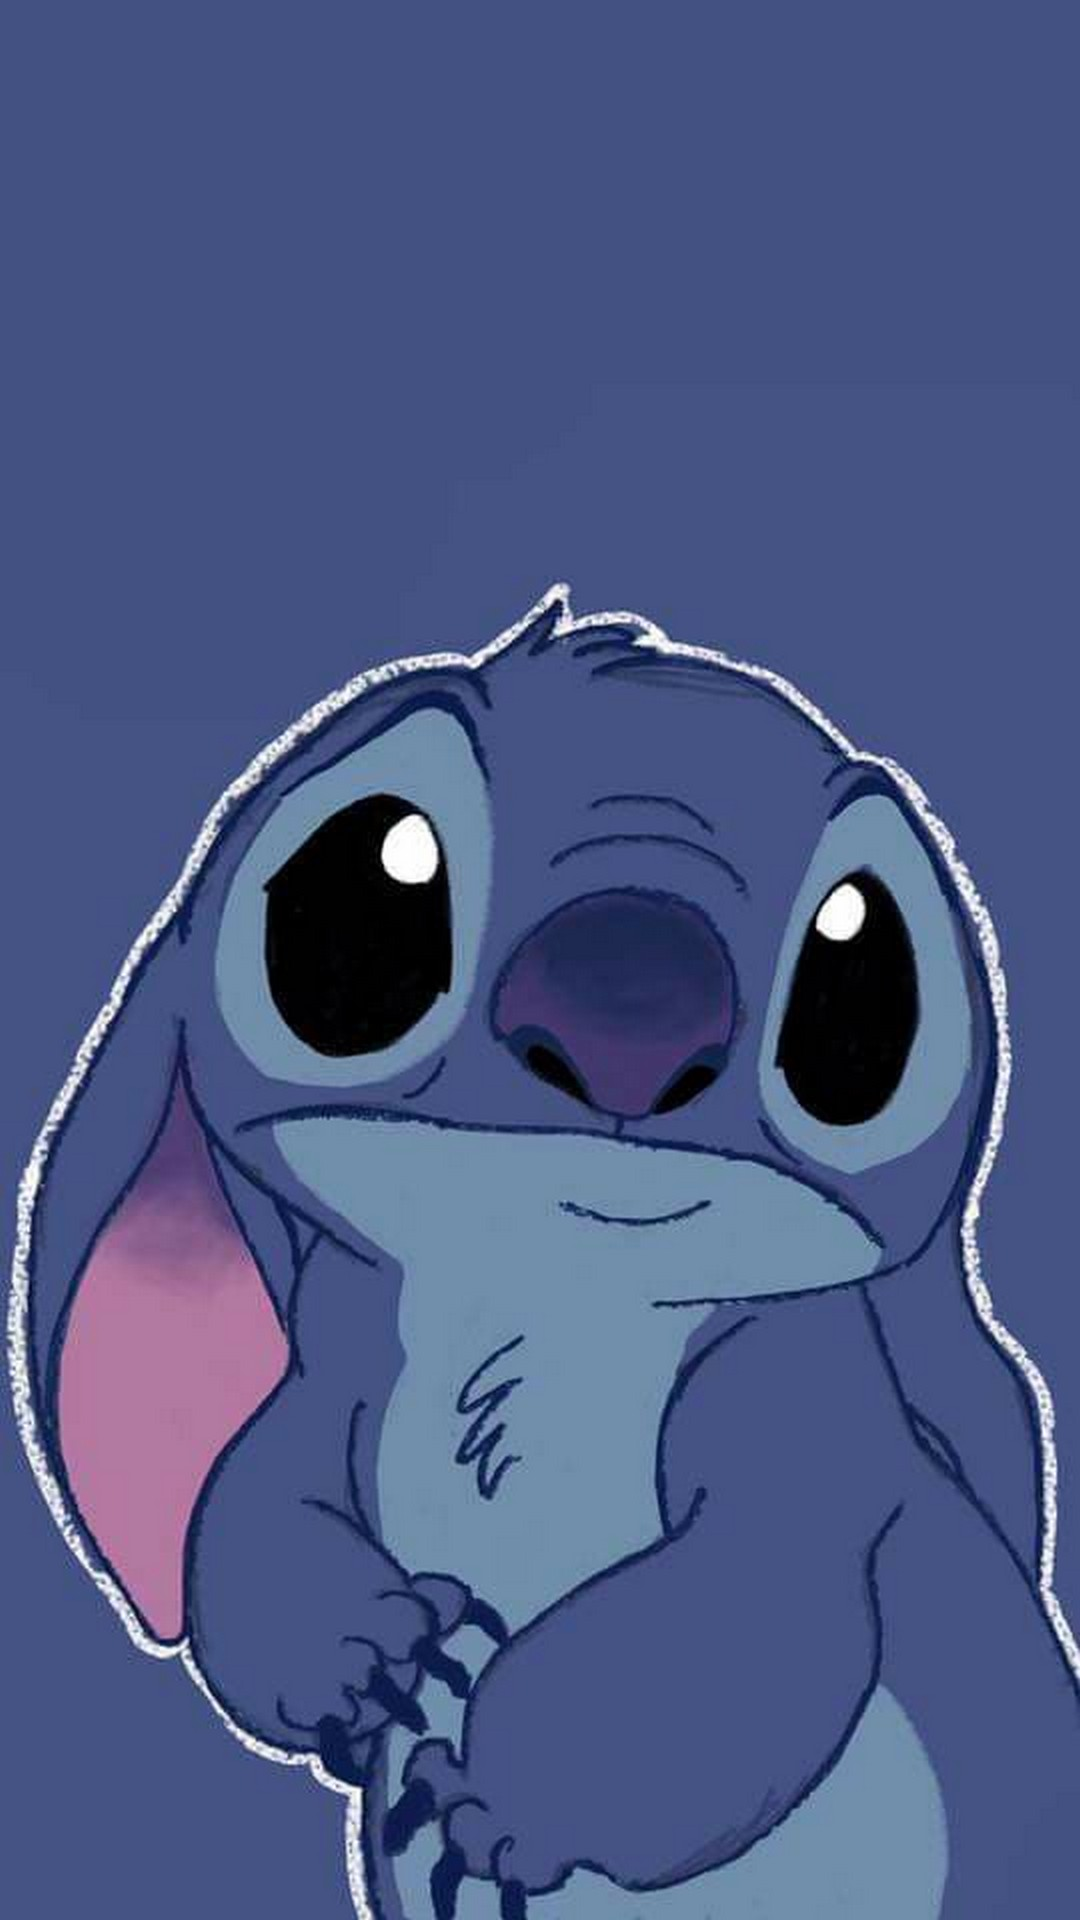 Stitch Disney iPhone Wallpaper HD 2019 Cute Wallpapers